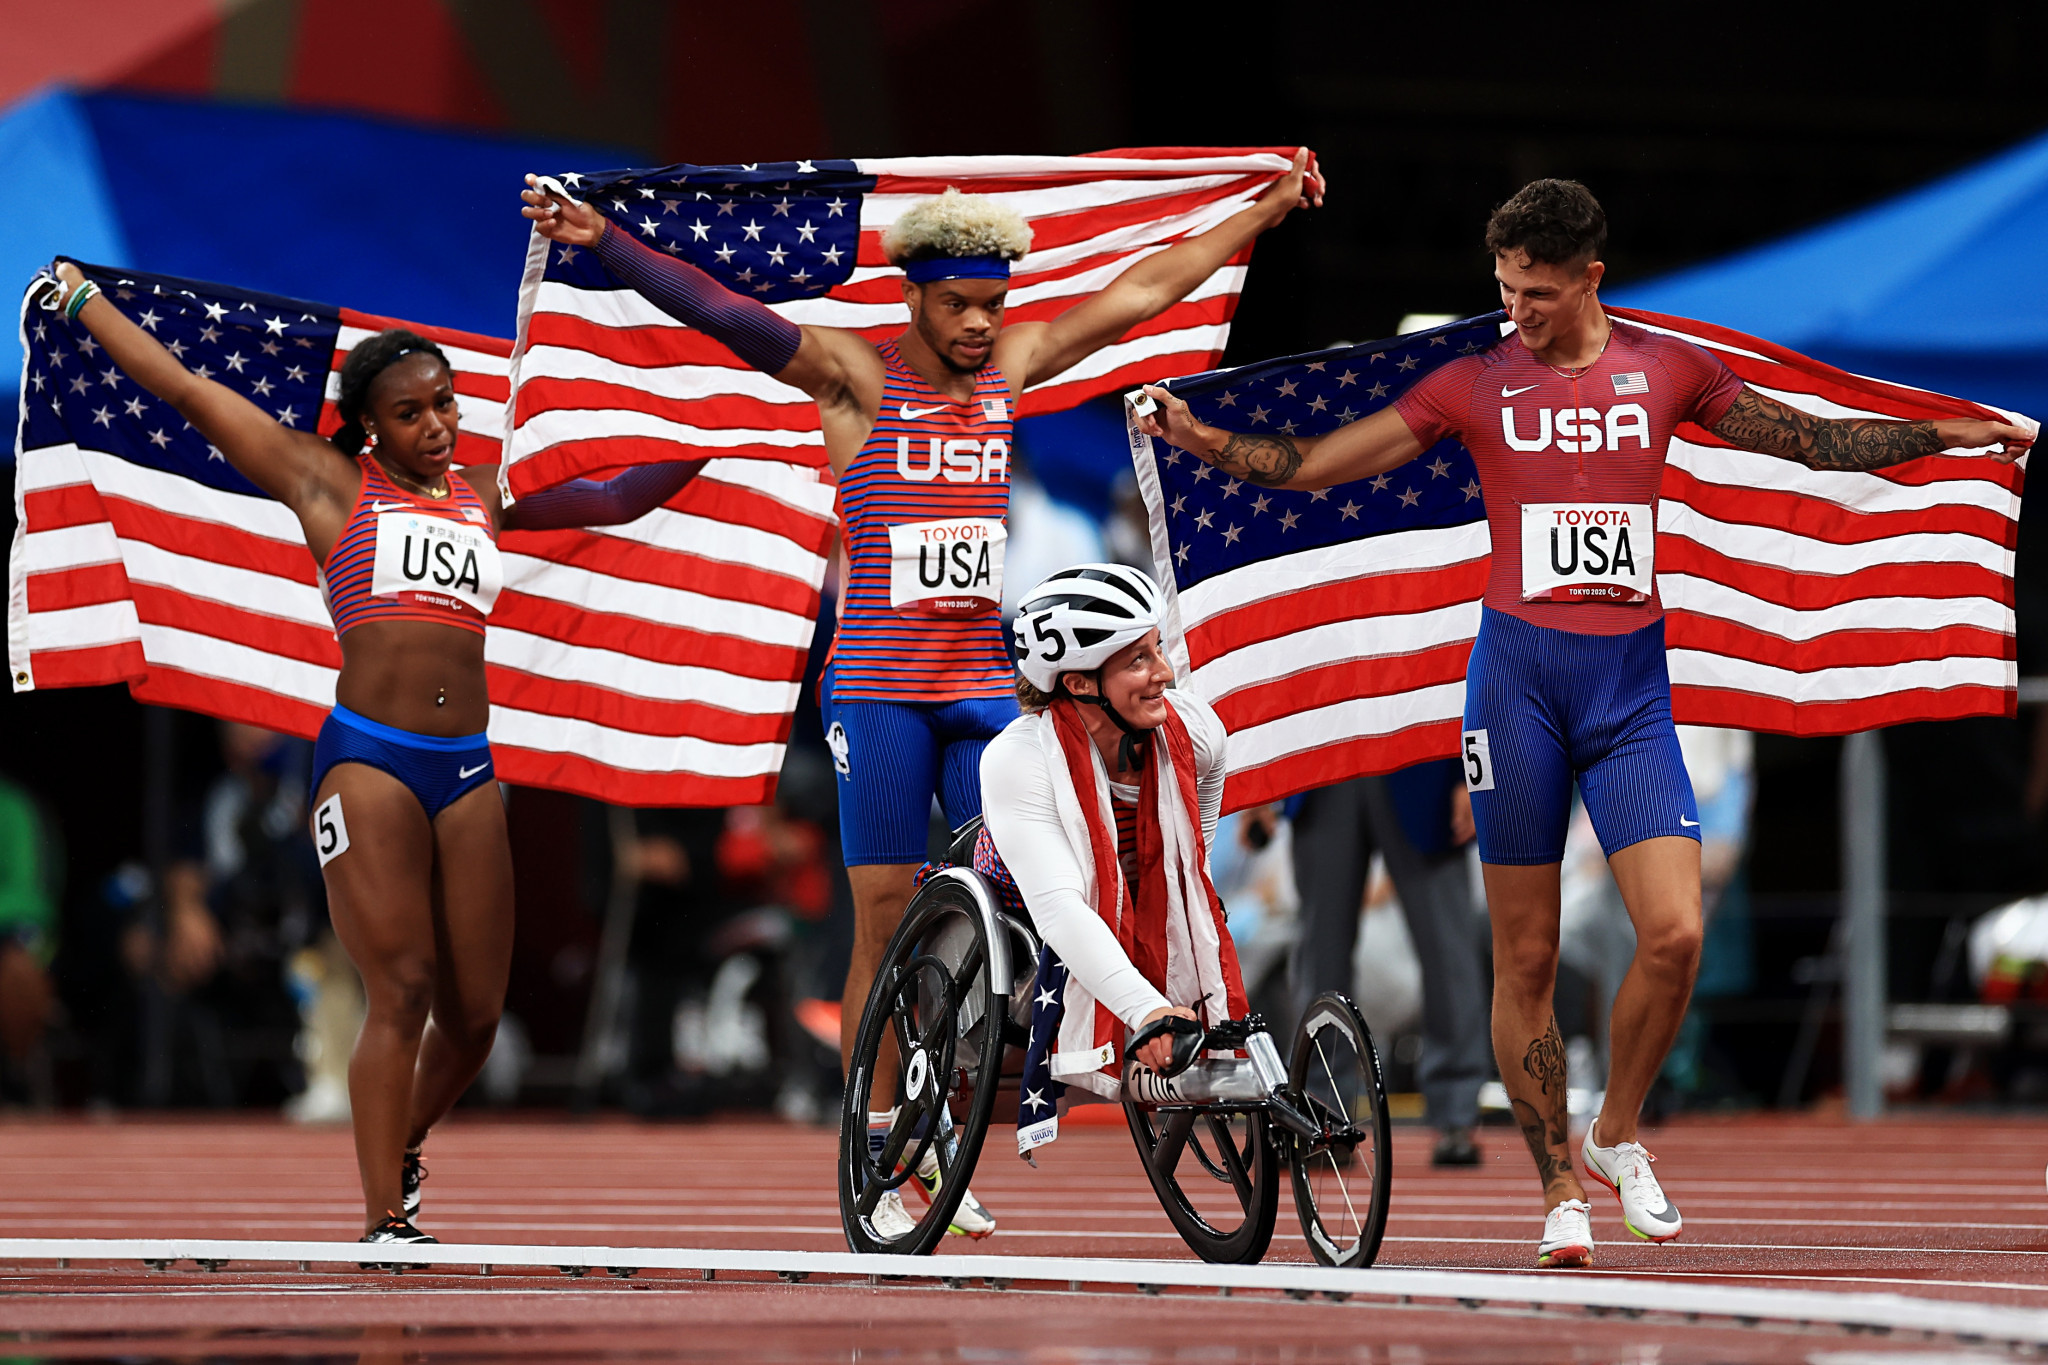 US capture first-ever universal relay Paralympic gold at Tokyo 2020